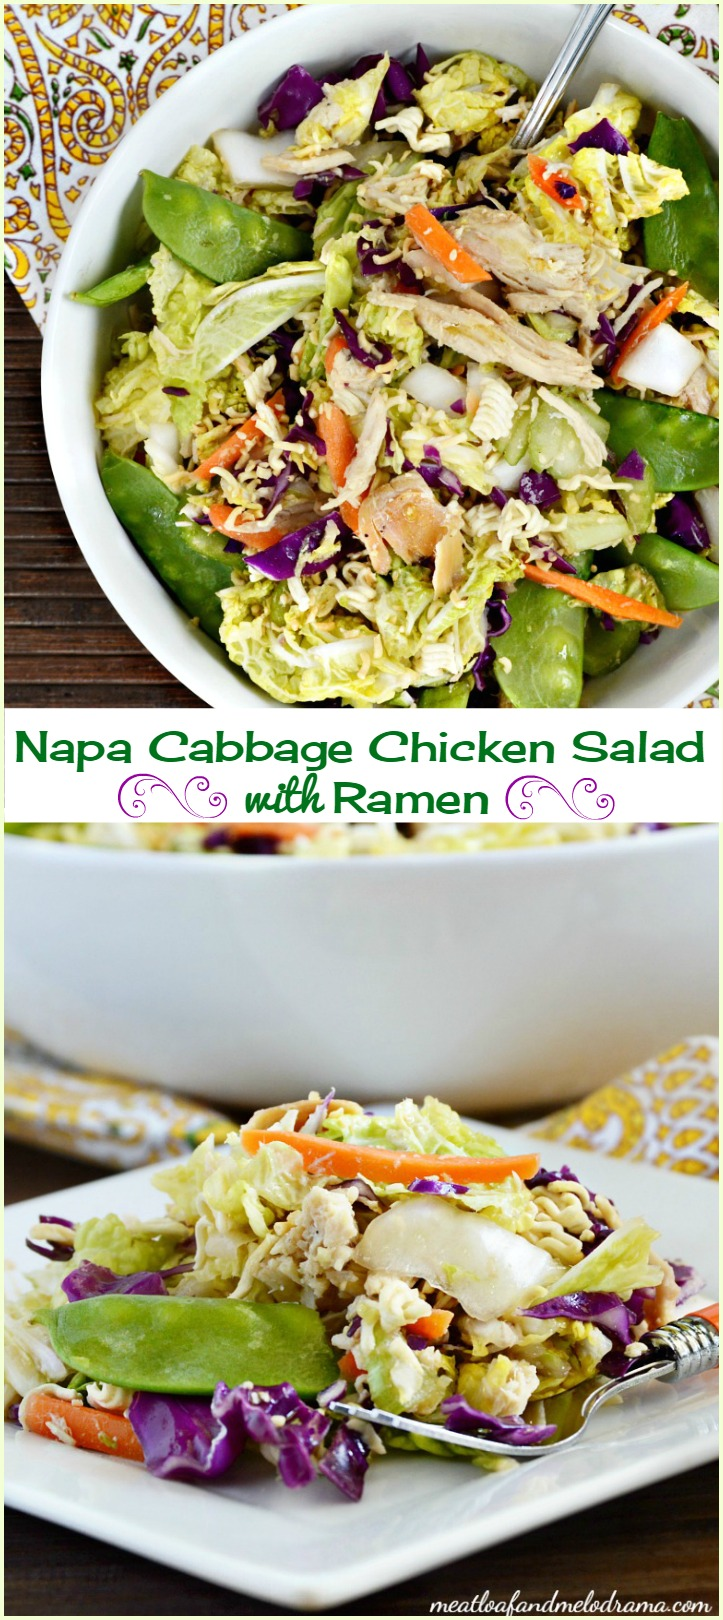 My family loved this Napa Cabbage Chicken Salad, and it made nice ...